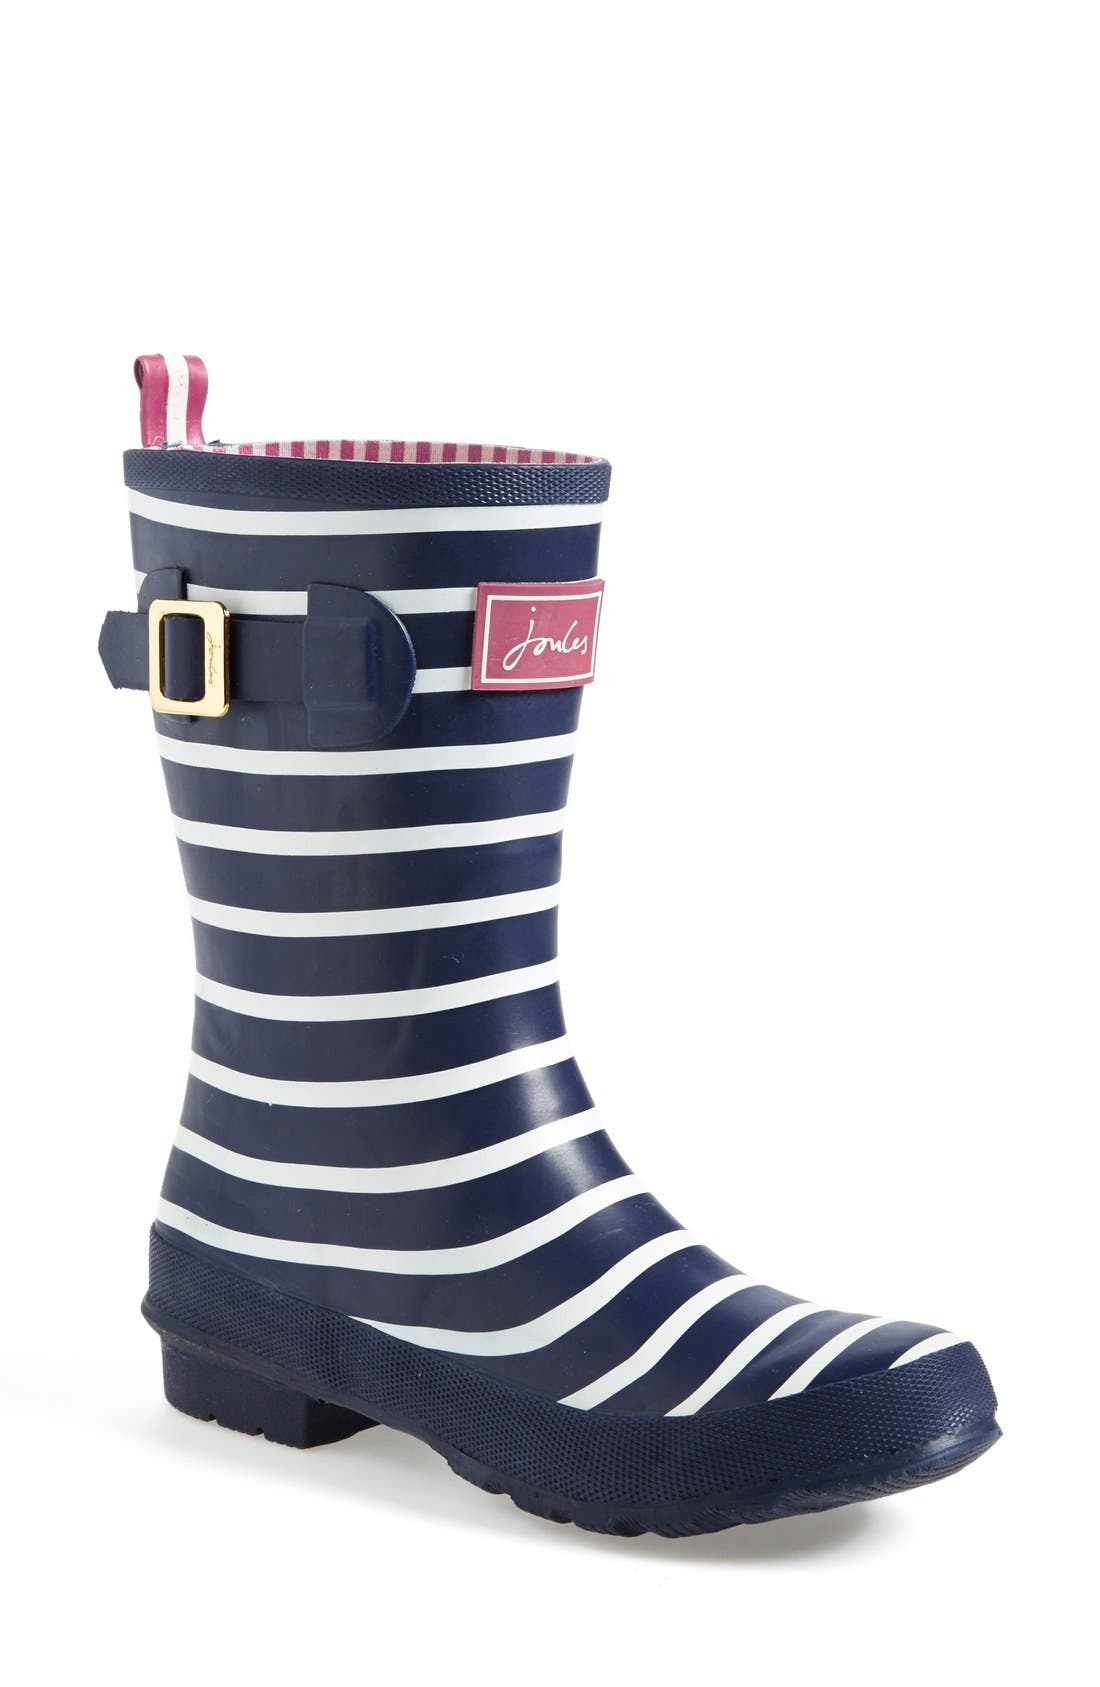 Alternate Image 1 Selected - Joules 'Molly' Rain Boot (Women)